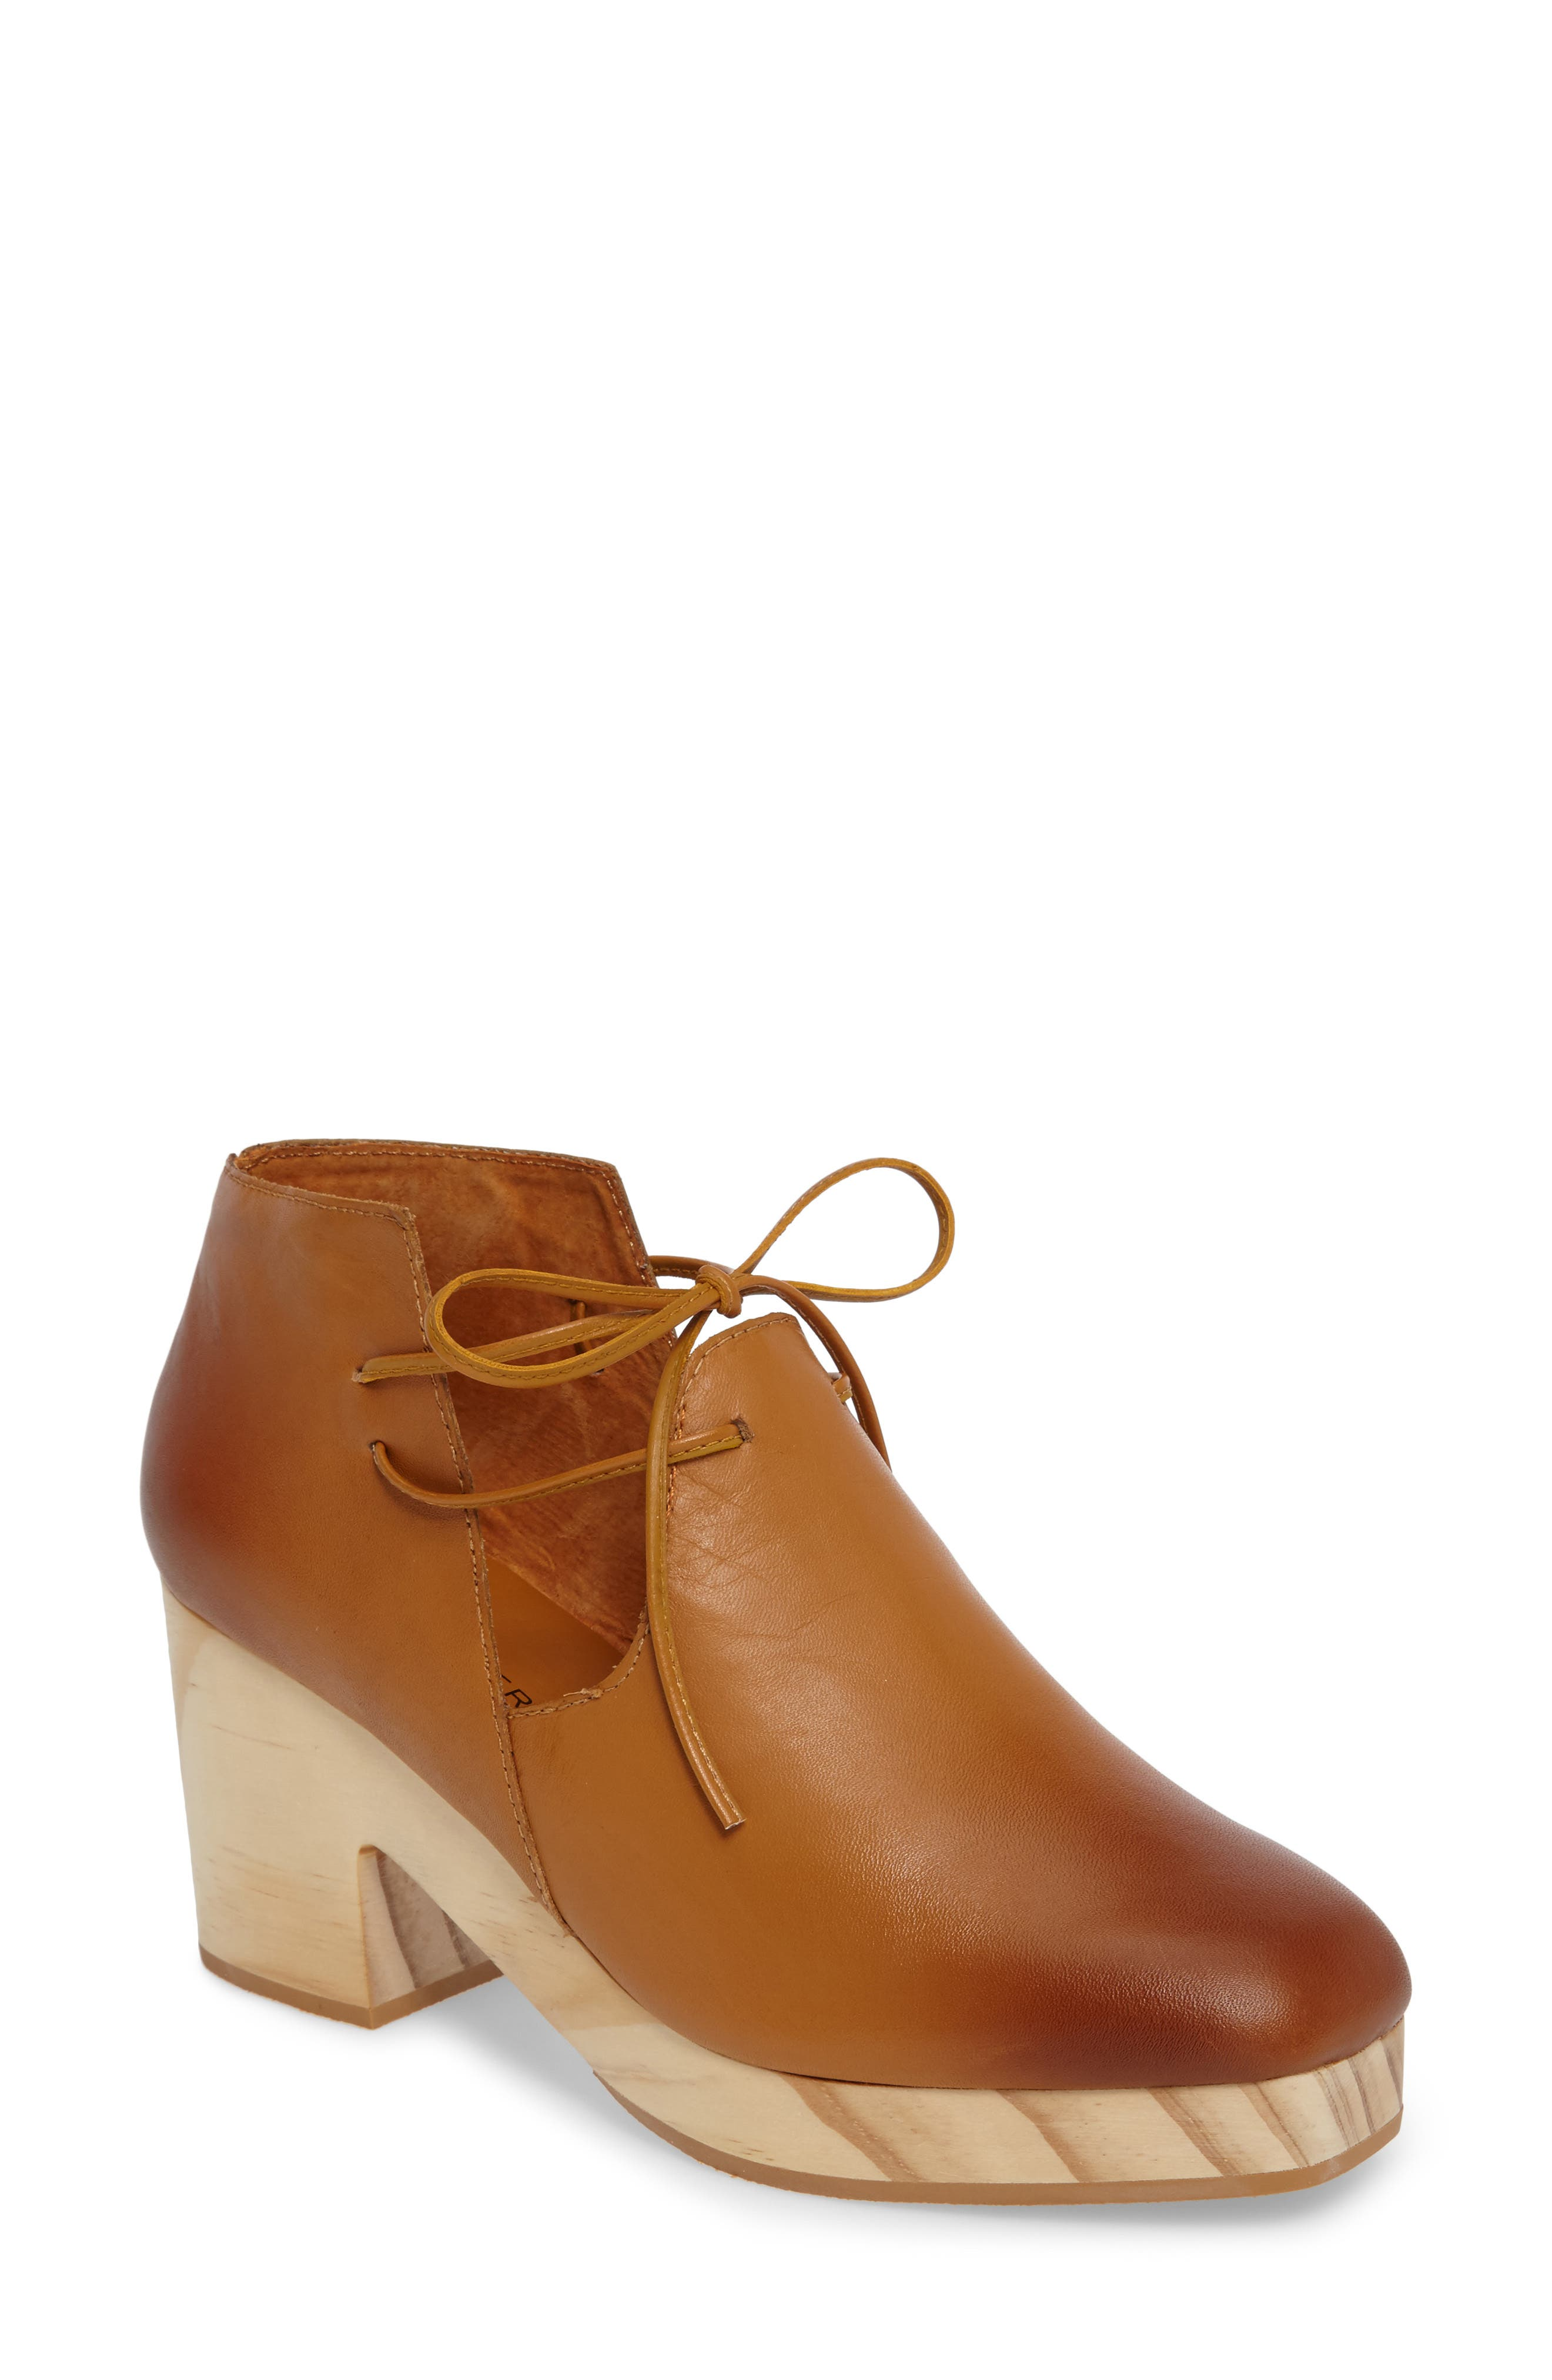 Kelsi Dagger Brooklyn North Platform Bootie (Women)